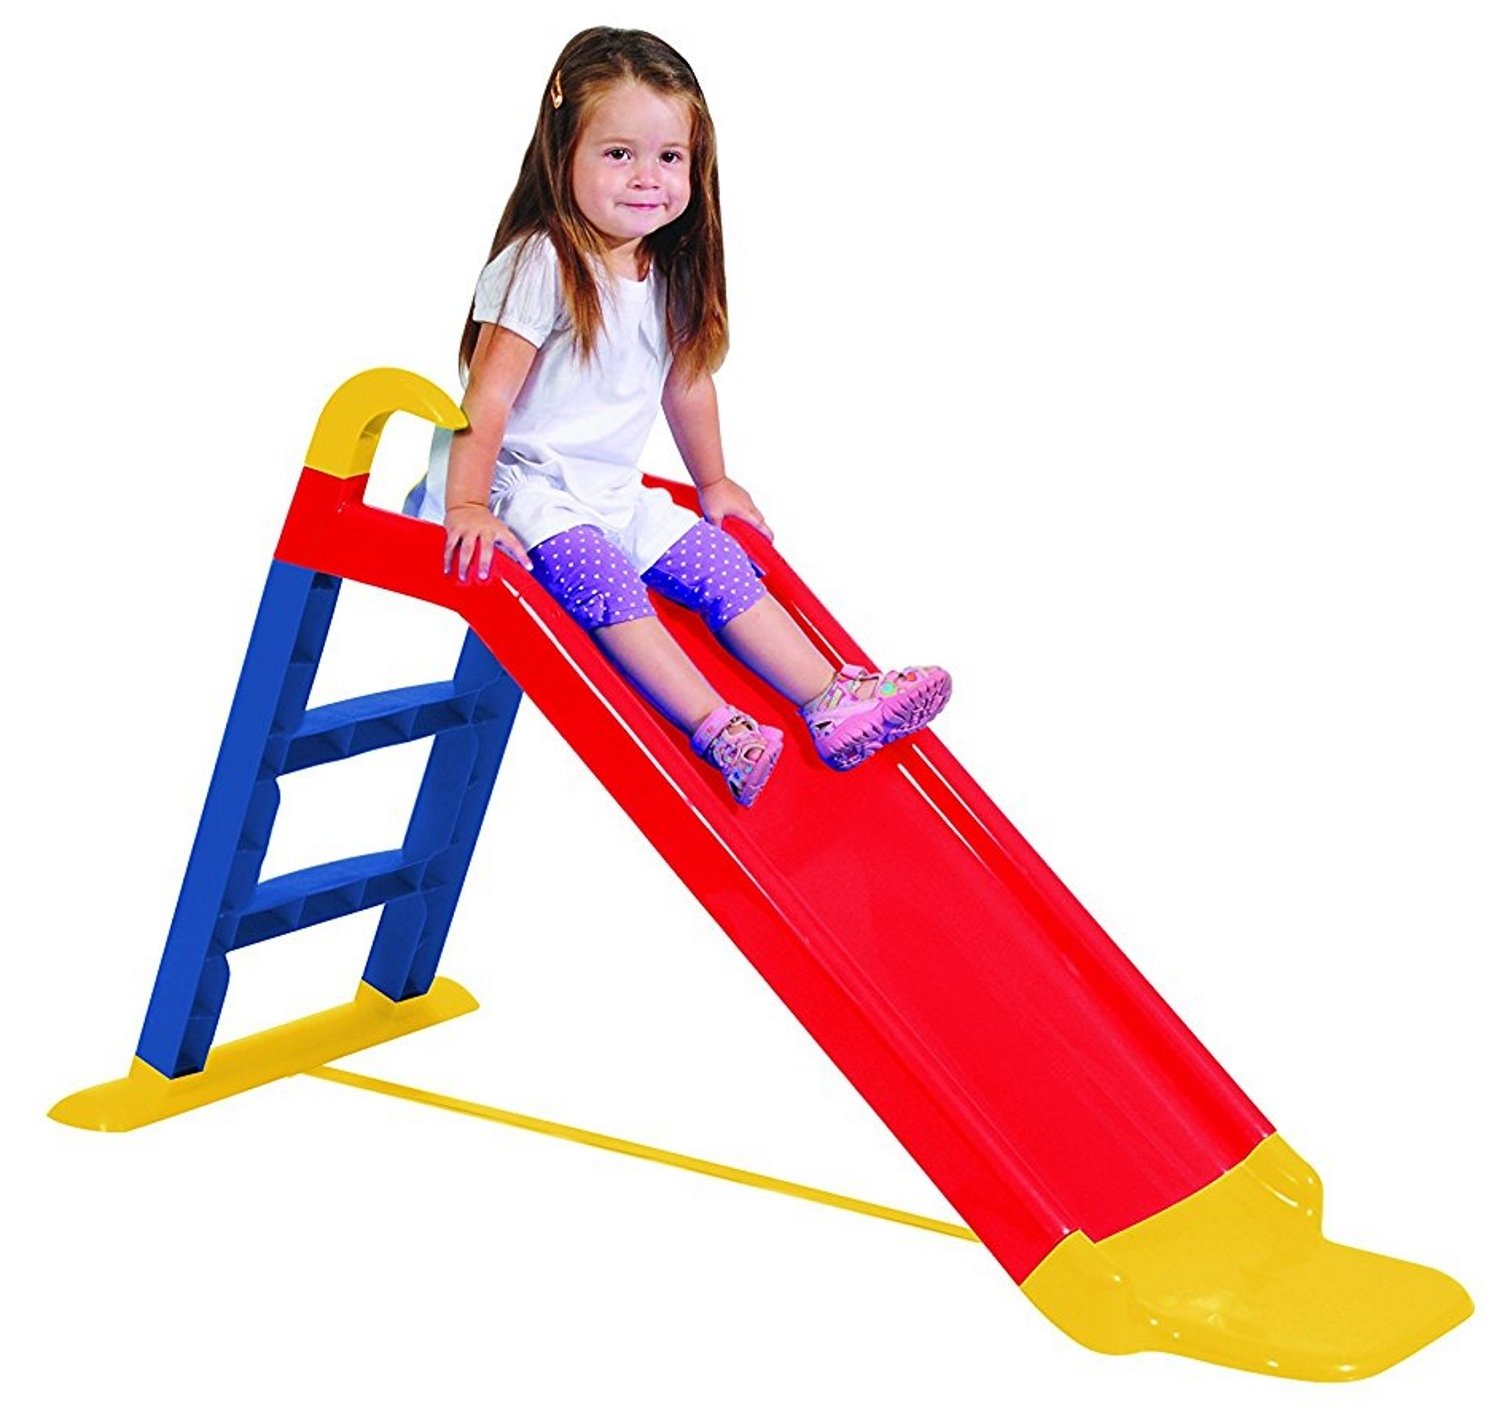 Starplay Childrens Slide, Red/Blue by Starplay